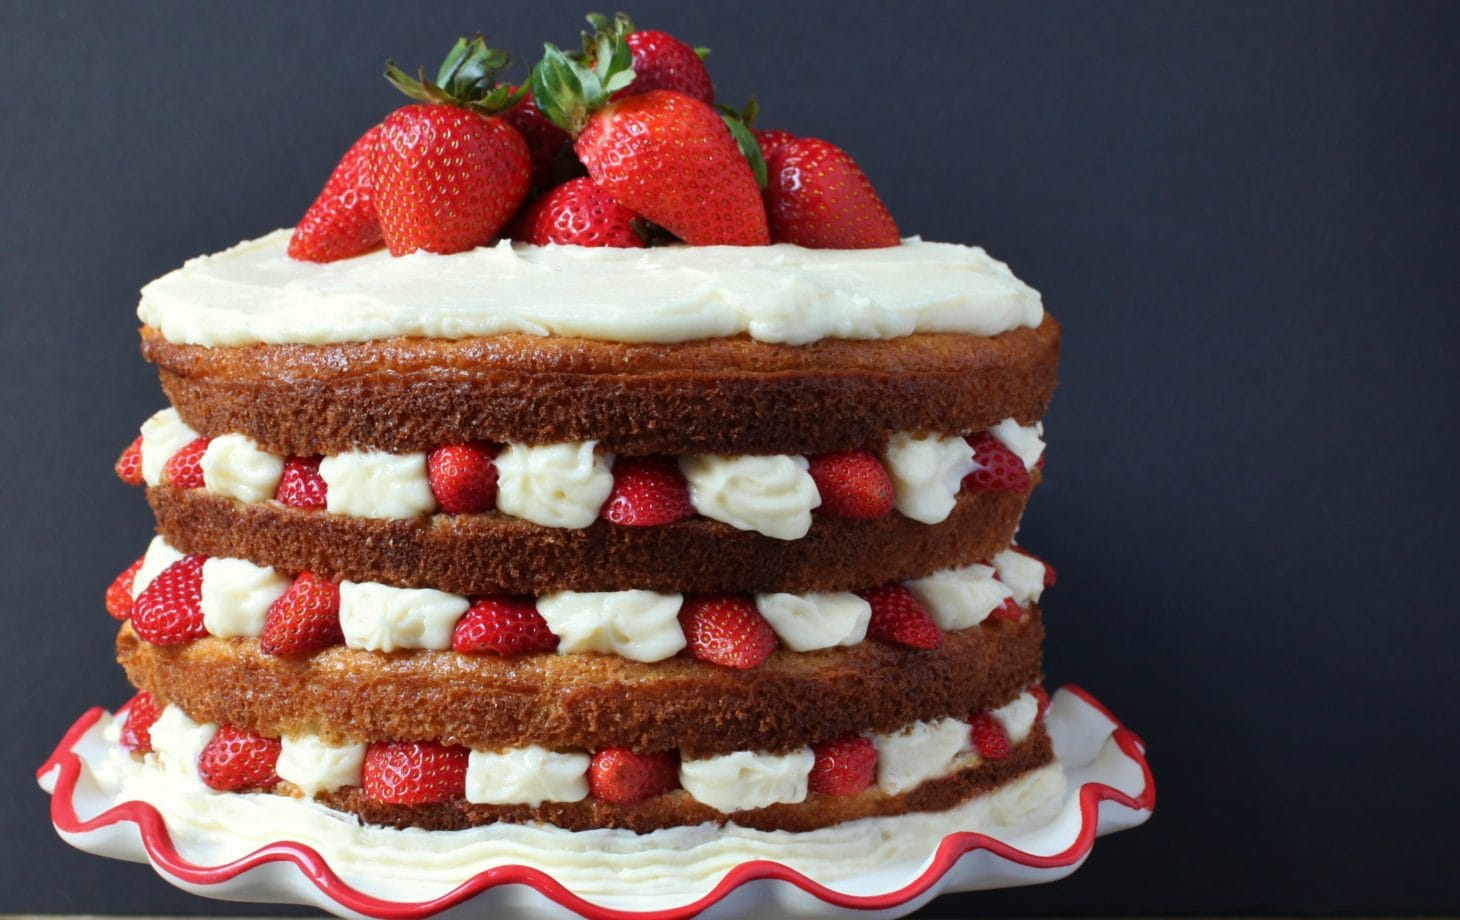 Wondrous Lemon Cardamom Layer Cake With Strawberries Mascarpone Dish N Birthday Cards Printable Nowaargucafe Filternl